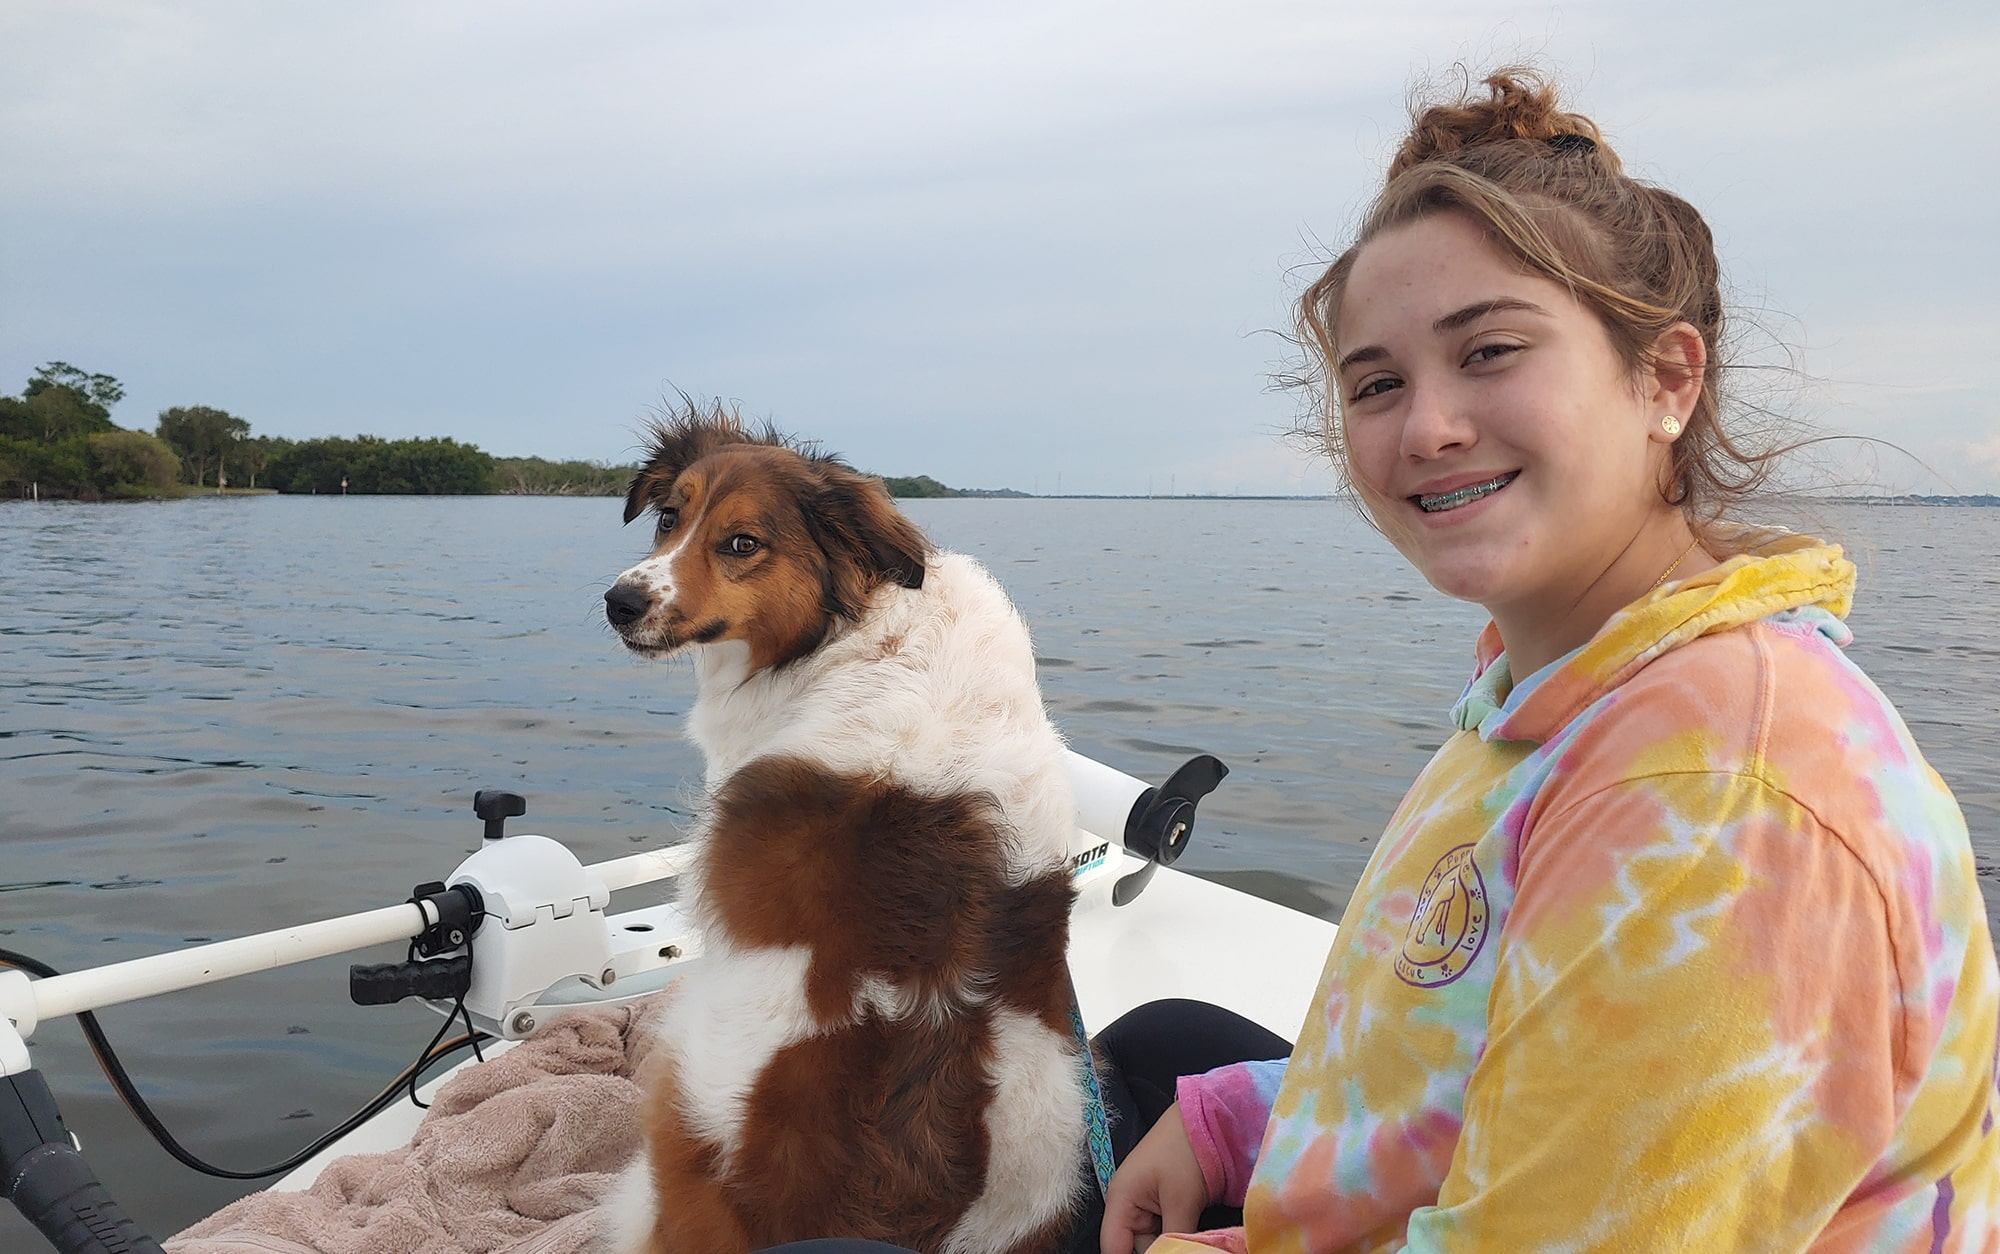 Family boating